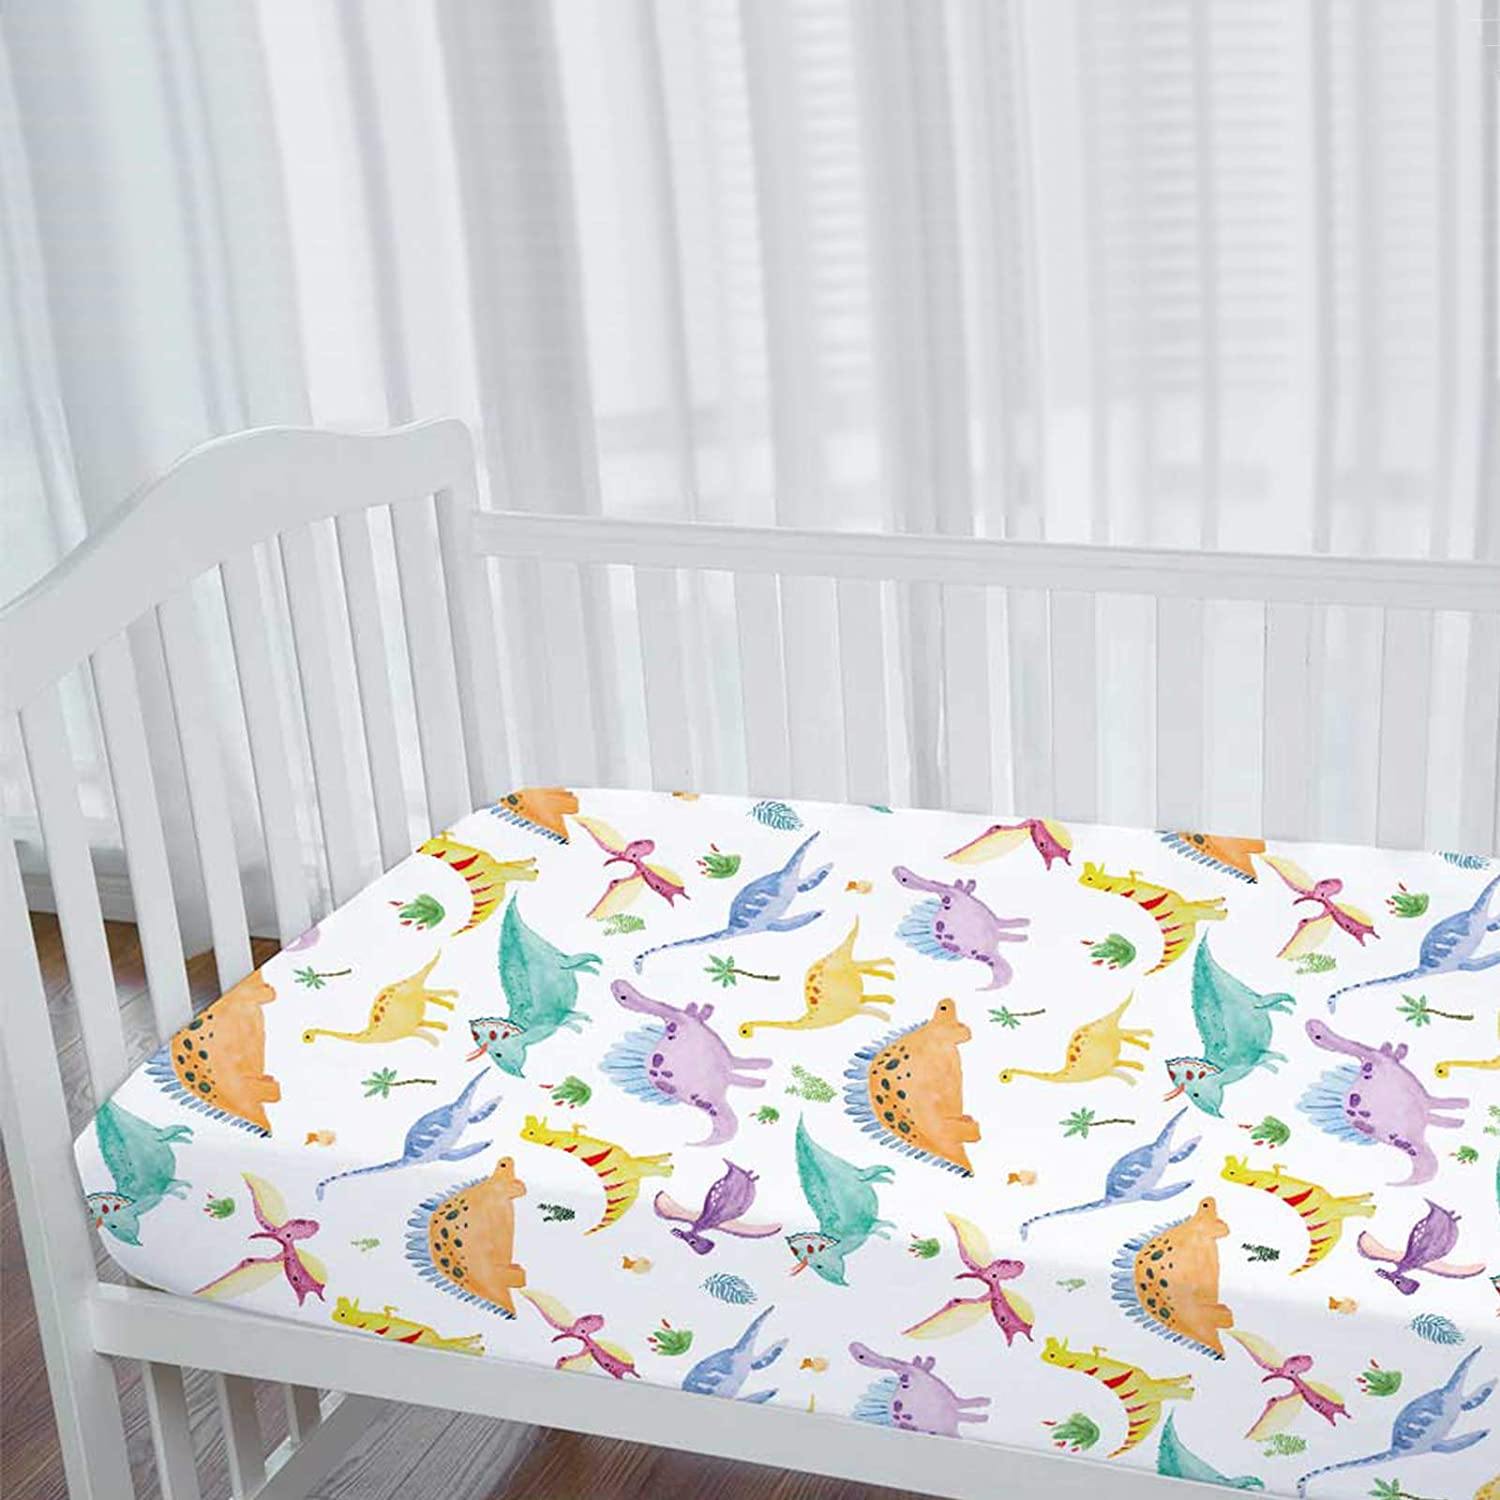 Dinosaur Crib Sheets for Boys Girls, Baby Toddler Sheets, Nursery Bedding, Soft and Breathable, Microfiber Soft, Fits Full Standard Size Crib Mattress 28in x 52in